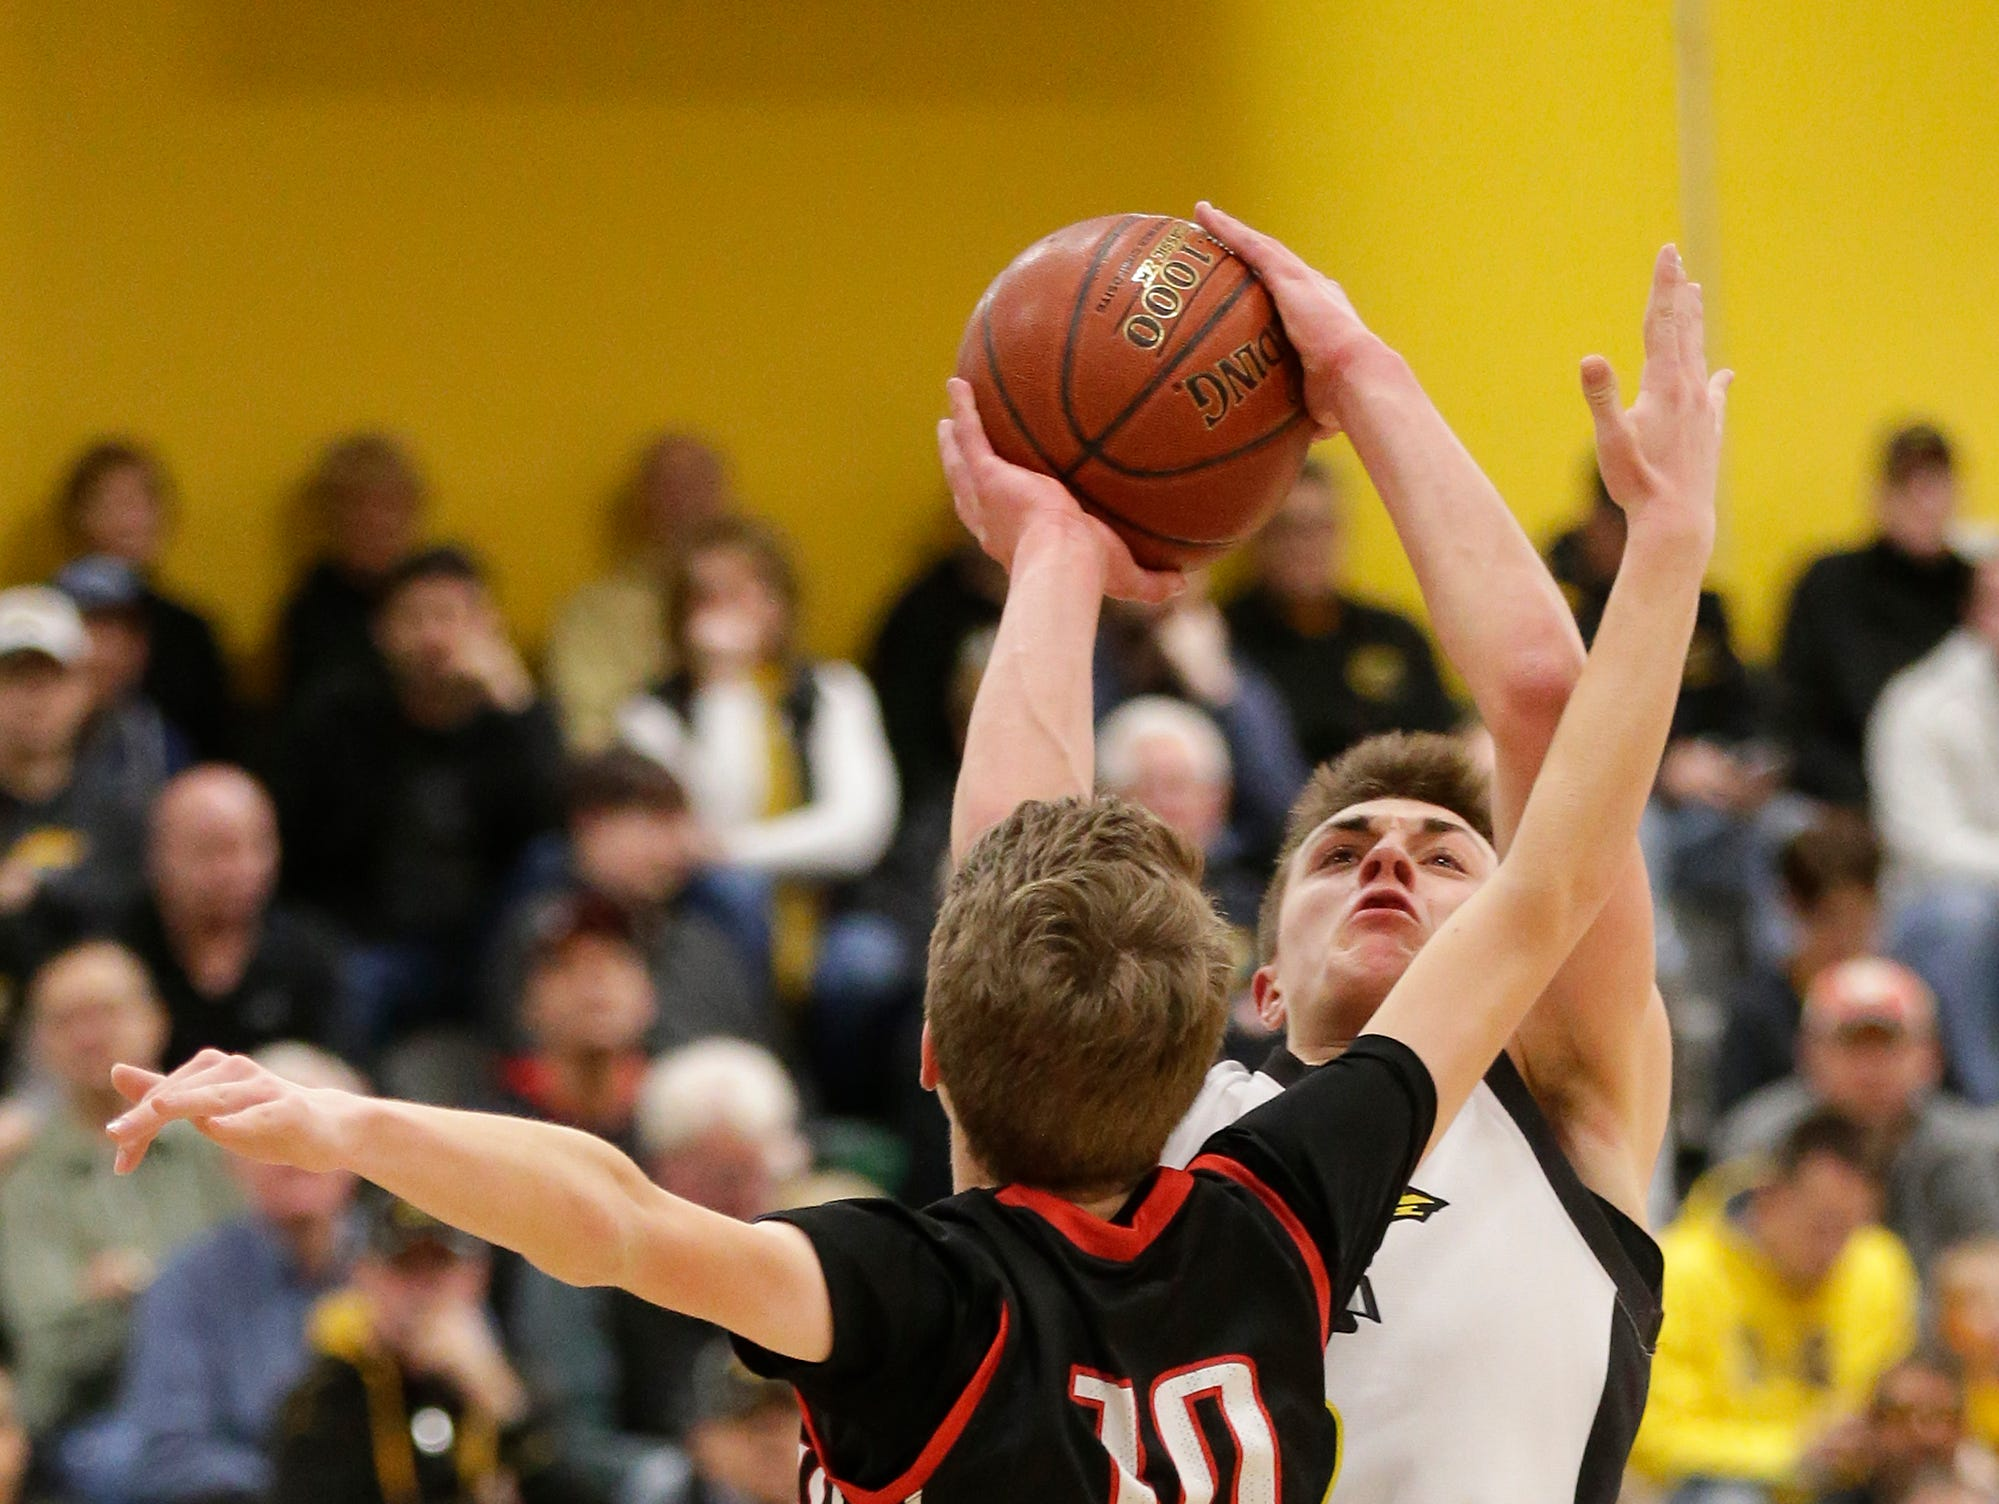 Waupun High School boys basketball's Trevor VandeZande goes up for a basket over Columbus High School's Adam Zahn during their WIAA division 3 sectional semi-final game Thursday, March 7, 2019 in Beaver Dam, Wis. Waupun won the game 79-36. Doug Raflik/USA TODAY NETWORK-Wisconsin